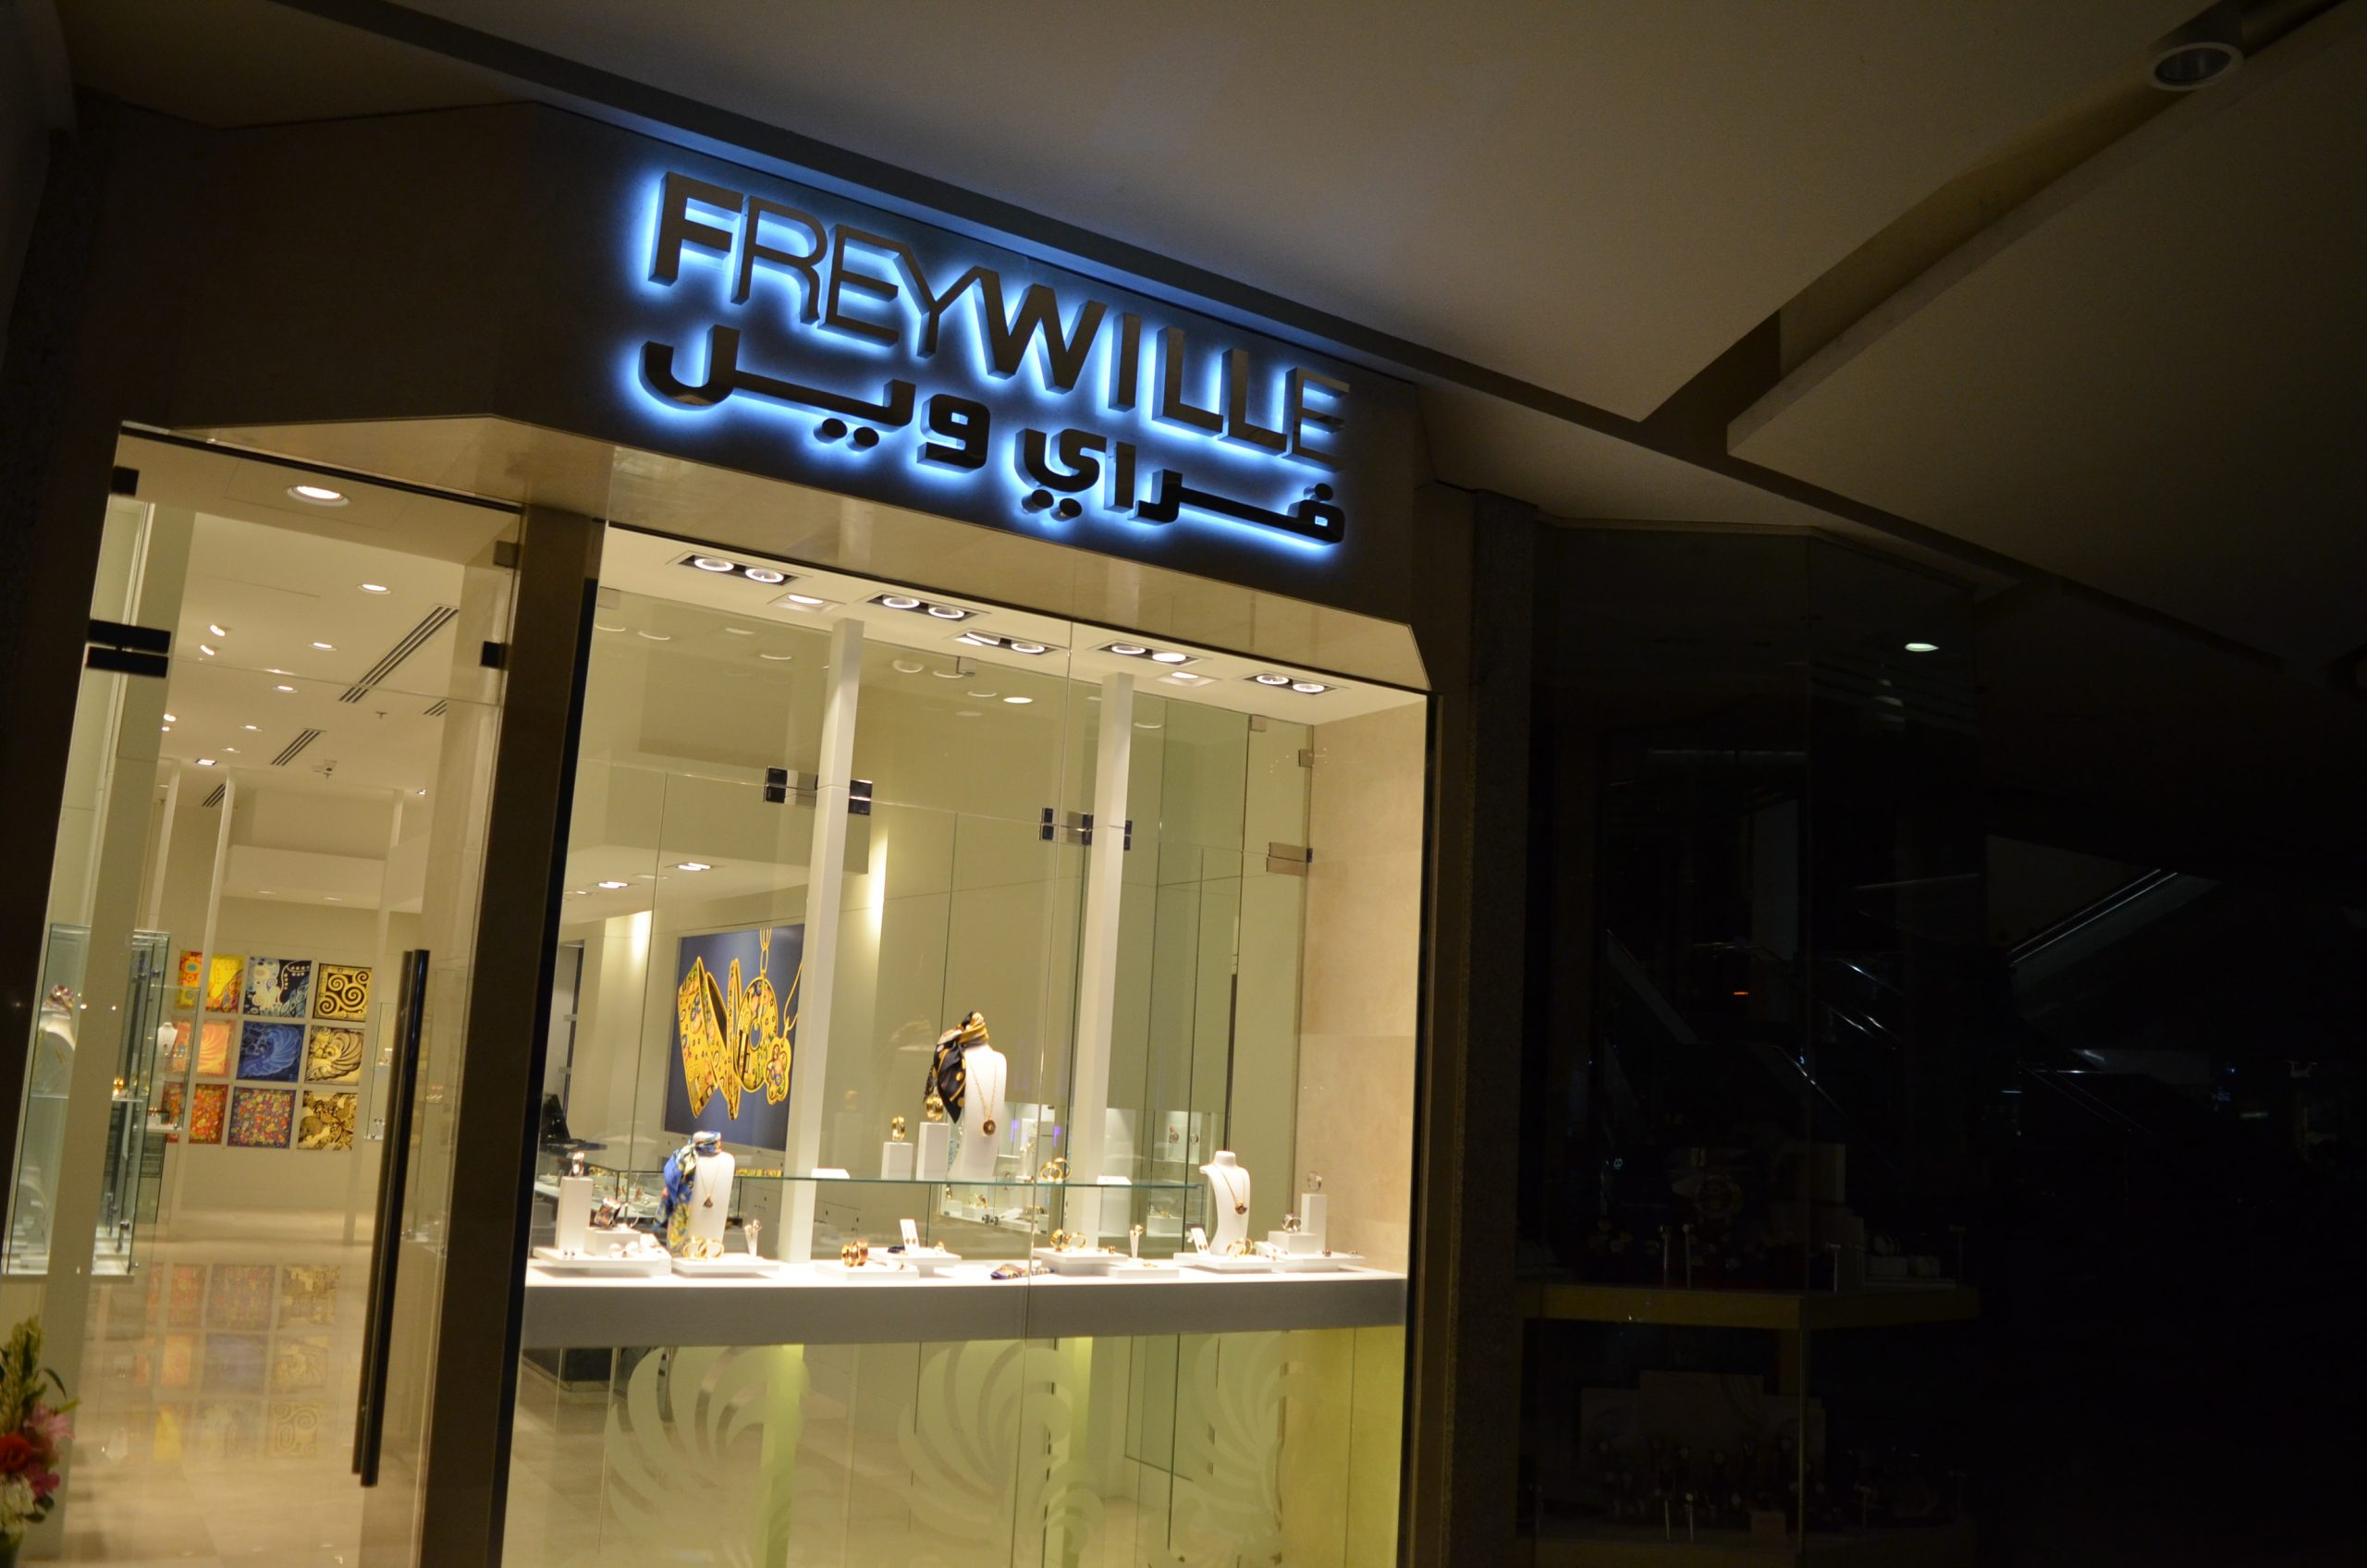 FREY WILLE gallery